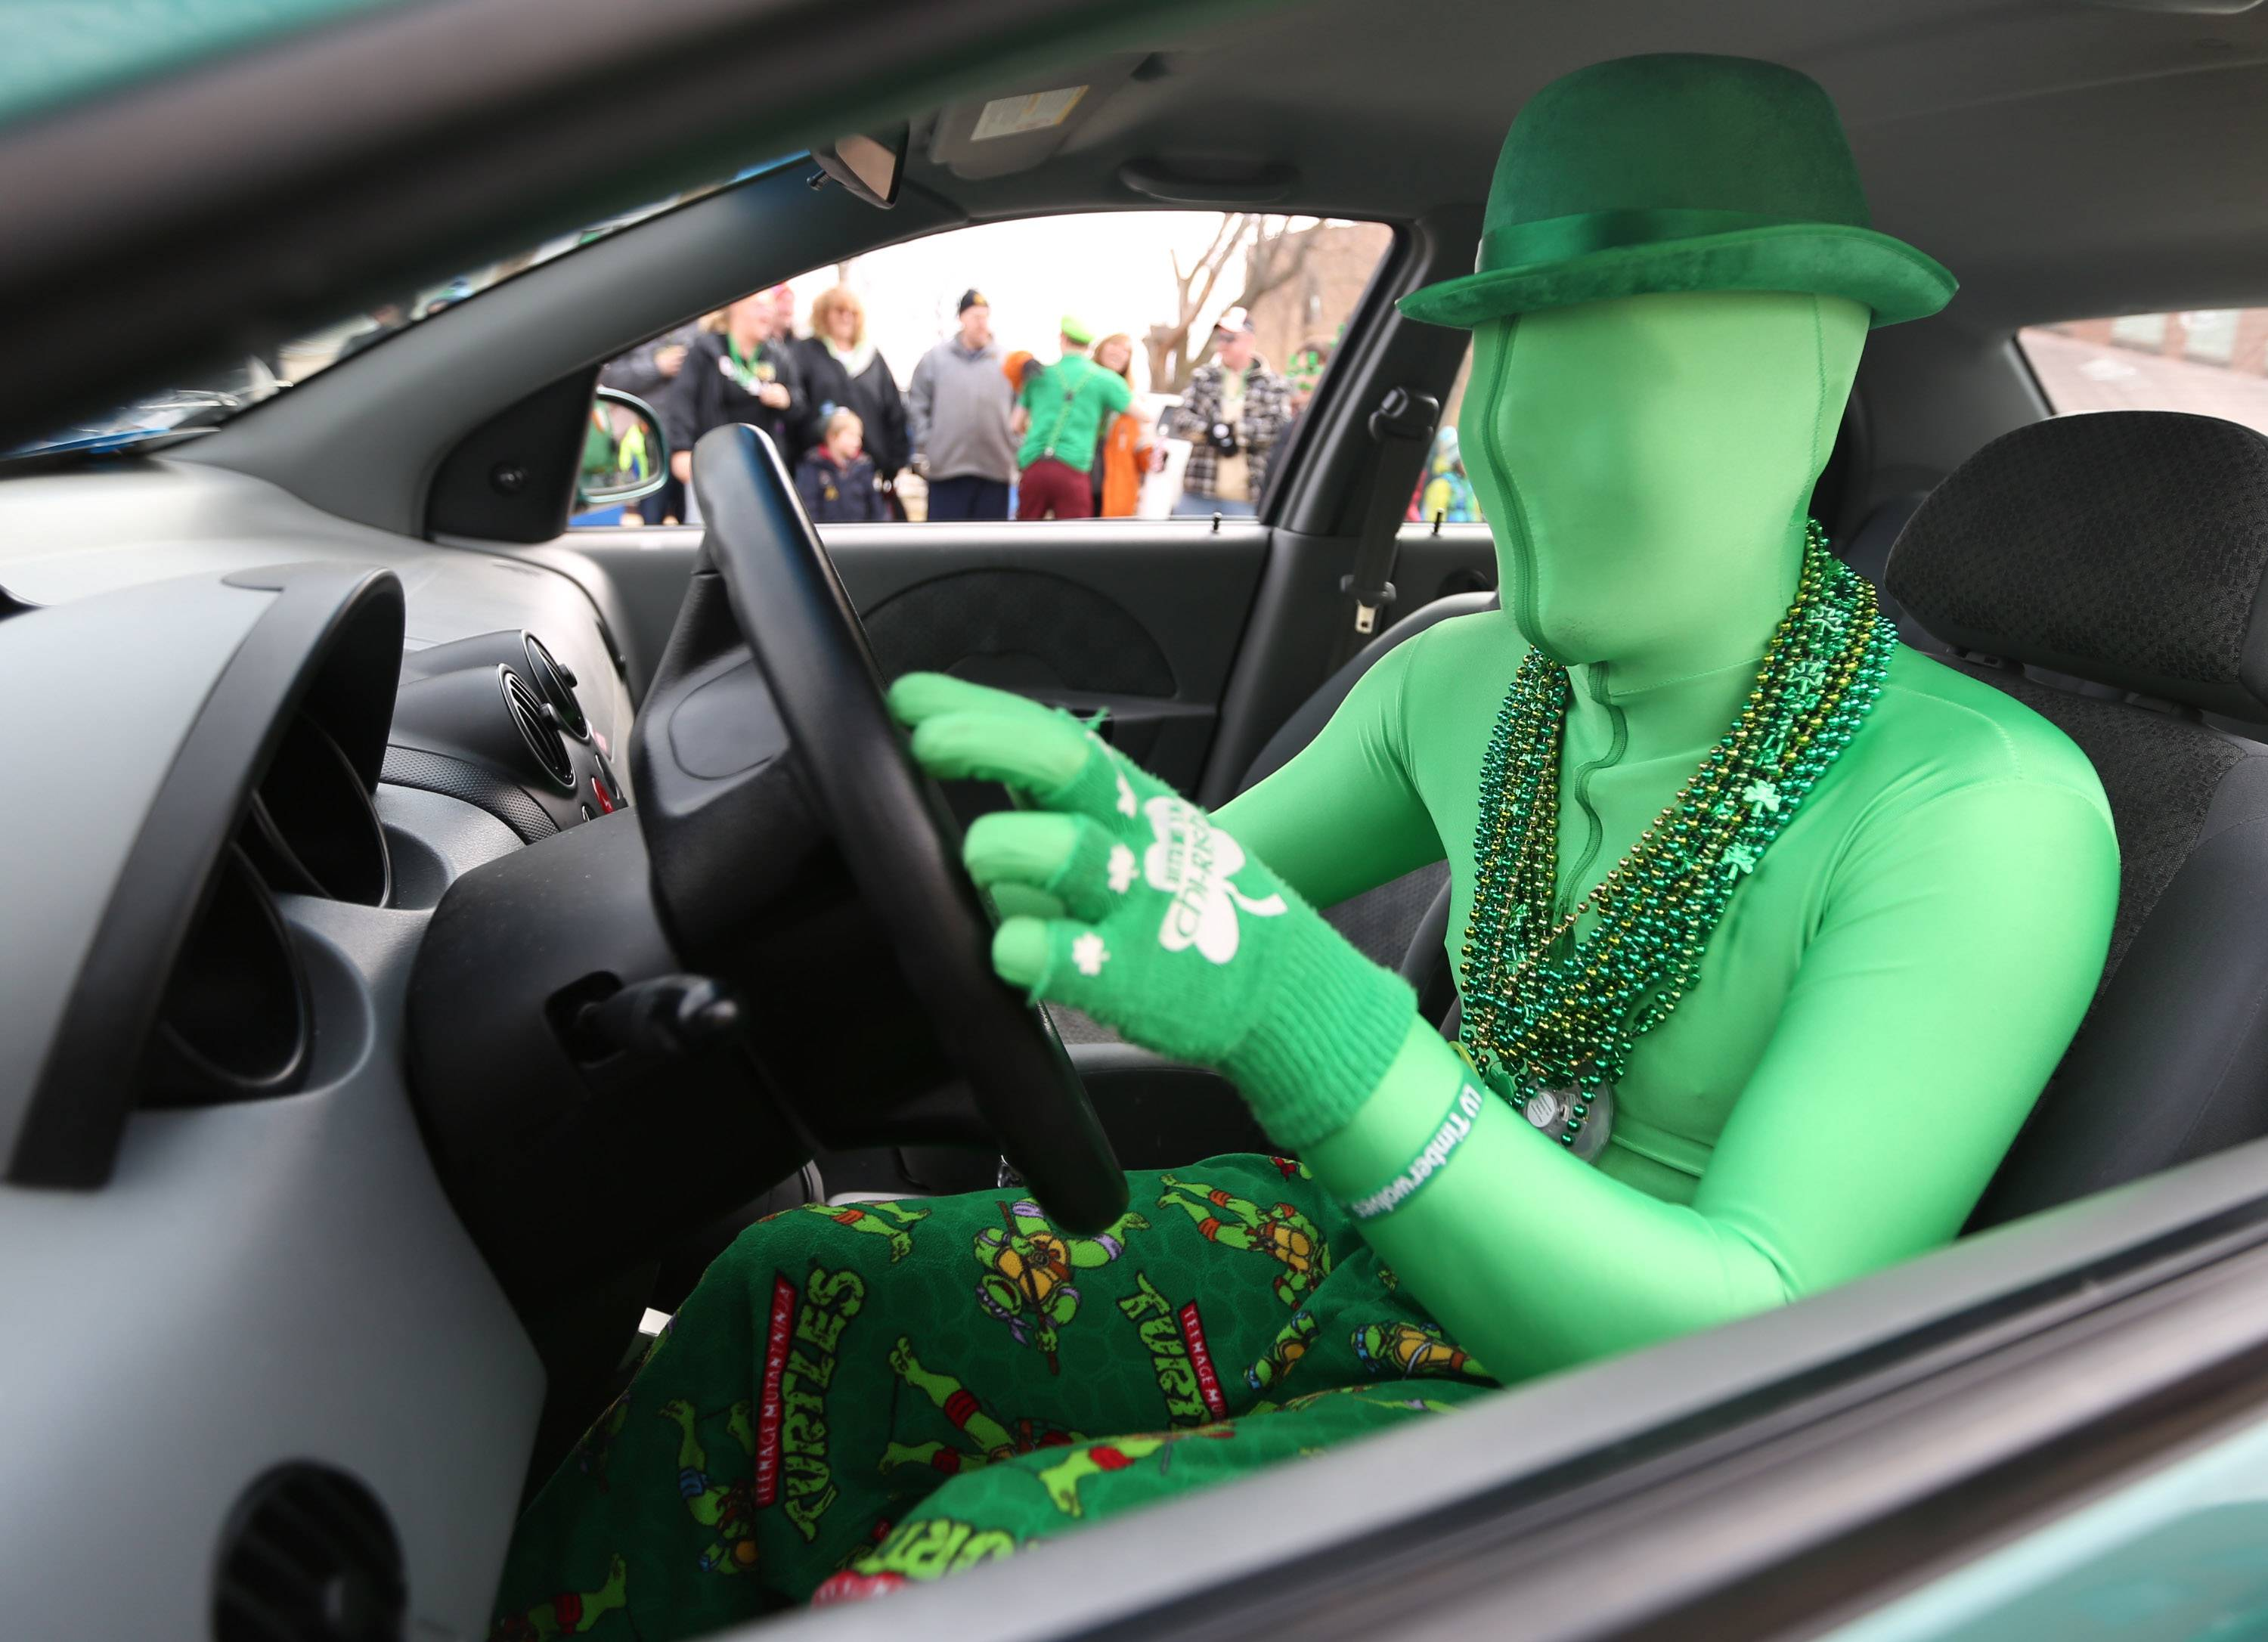 Ryan Coy of Lake Villa drives Blackthorn Grille's car in the Village of Lake Villa's St. Patrick's Day Parade on Saturday.